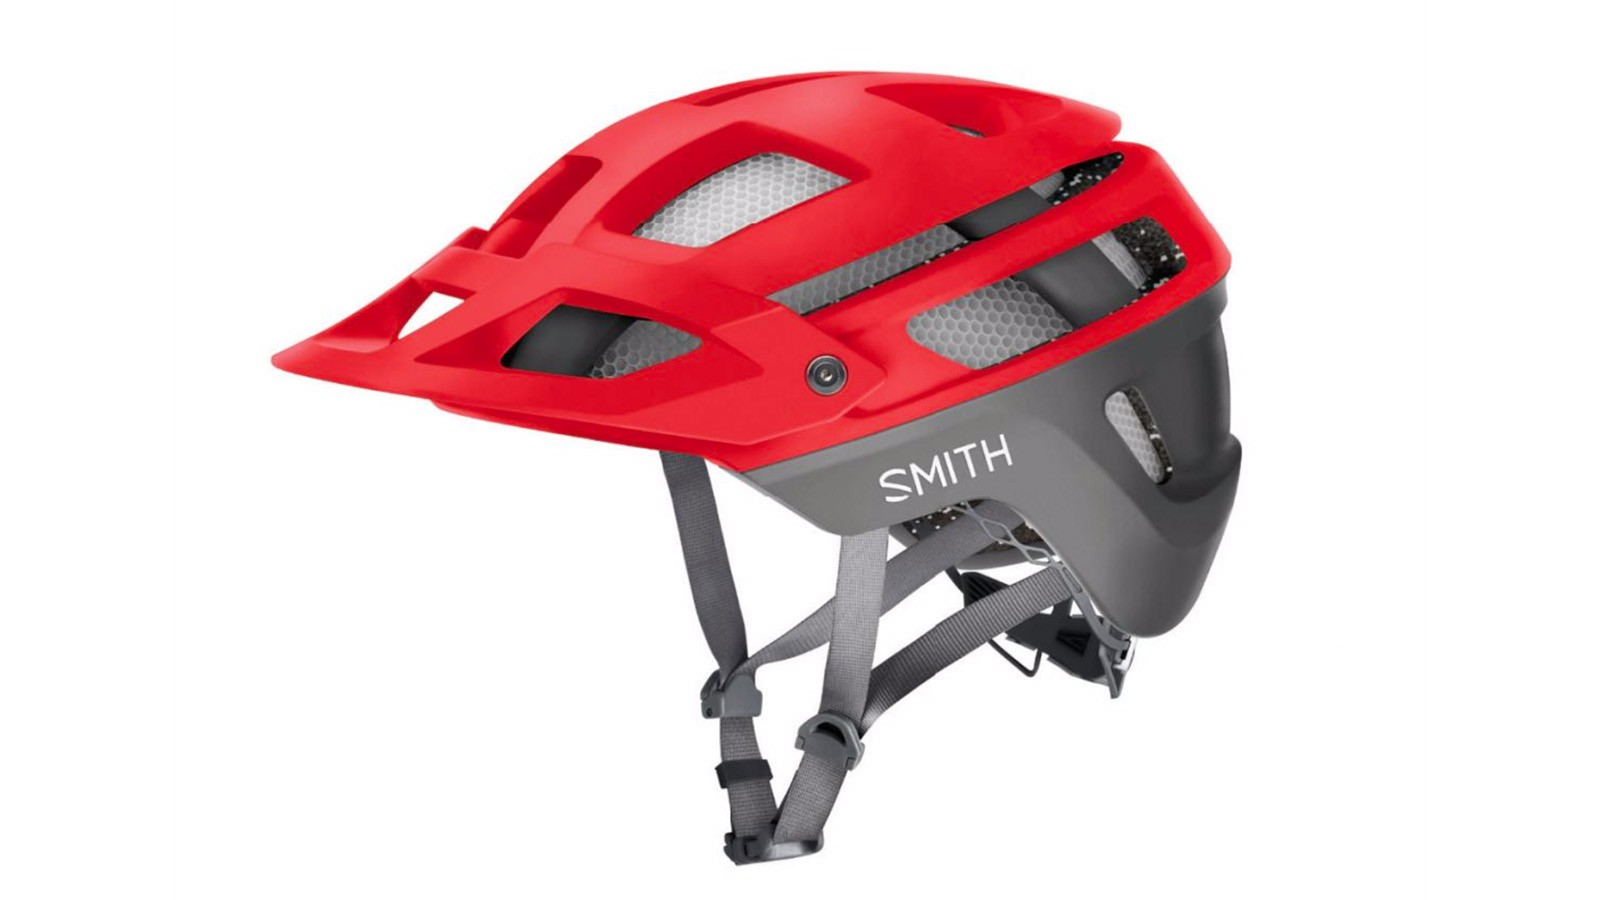 Smith has updated the Forefront trail helmet for 2018